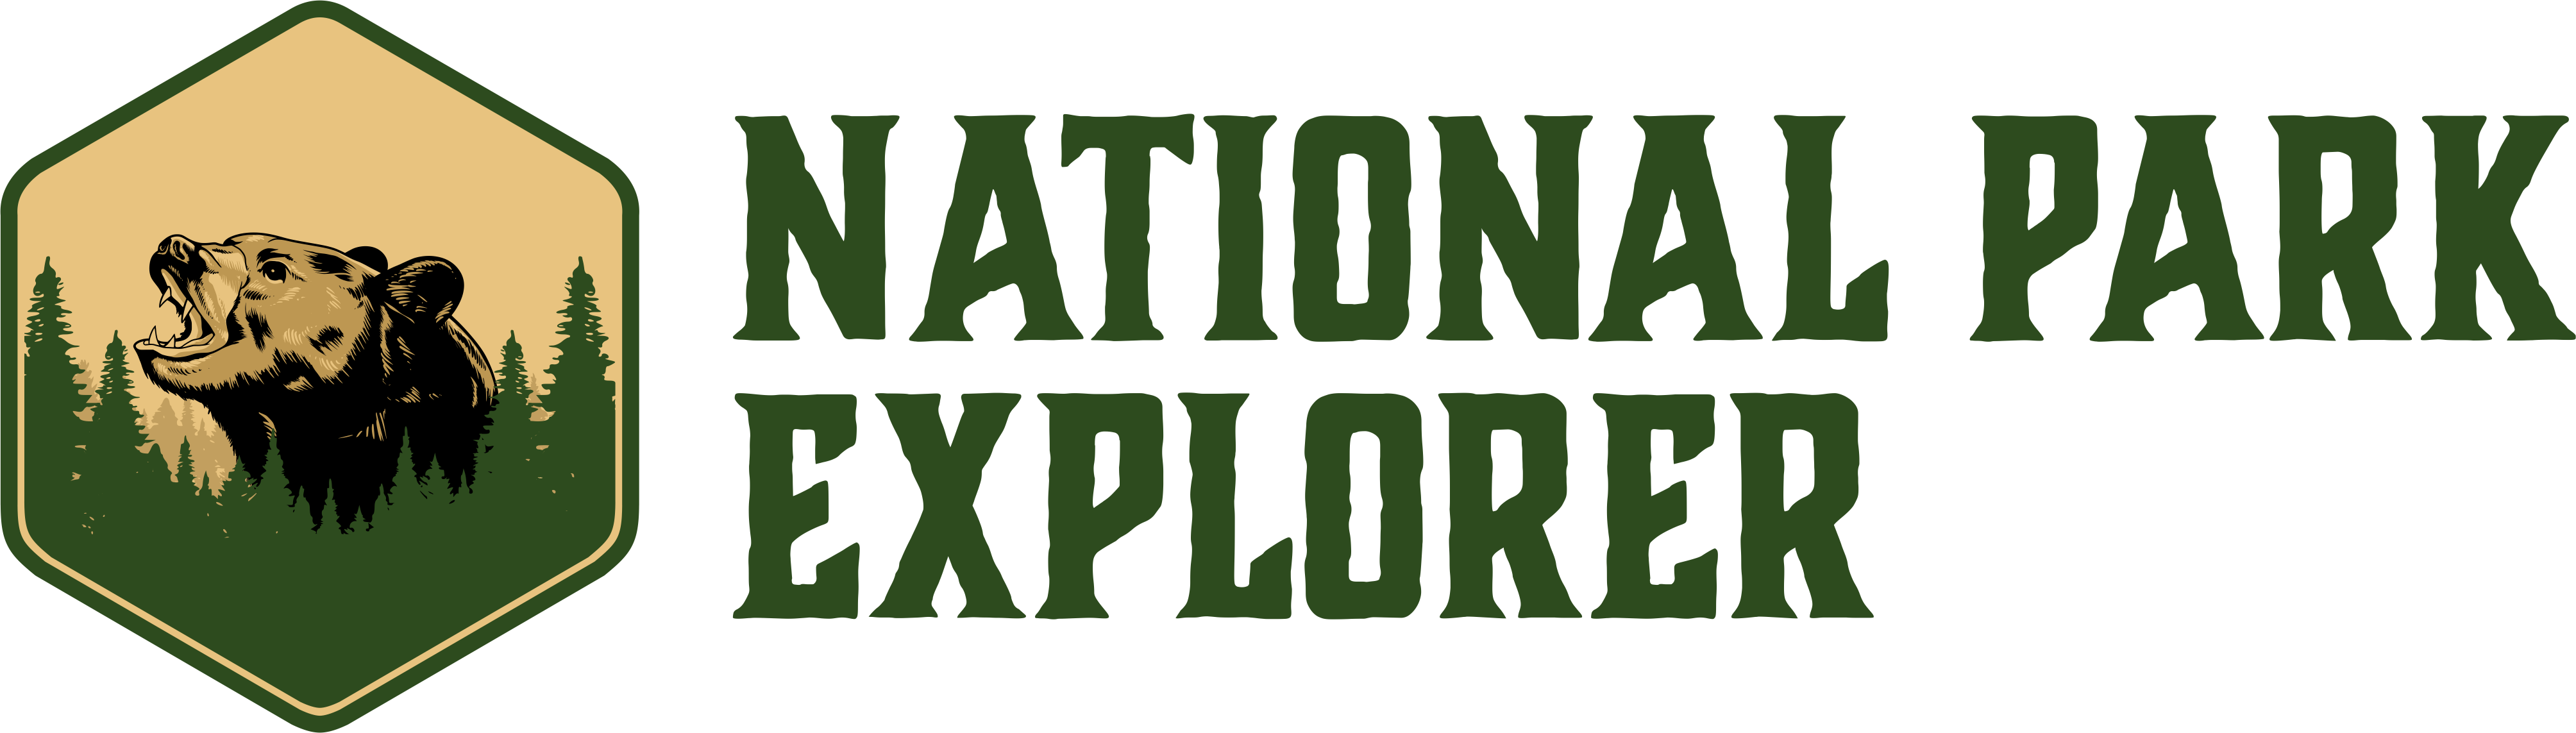 National Park Explorer